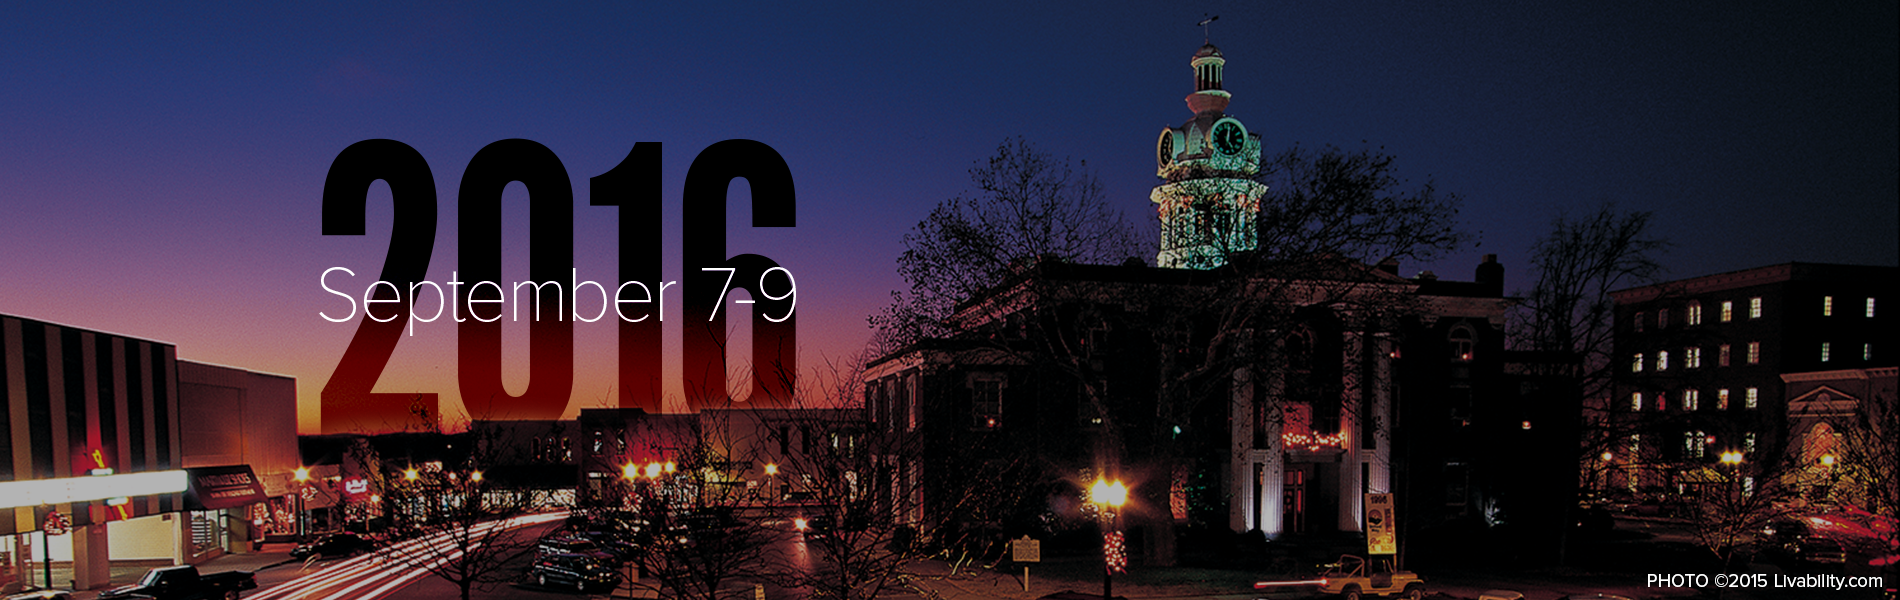 Interested in sponsoring the @GHSAHQ Annual meeting in #Nashville ...